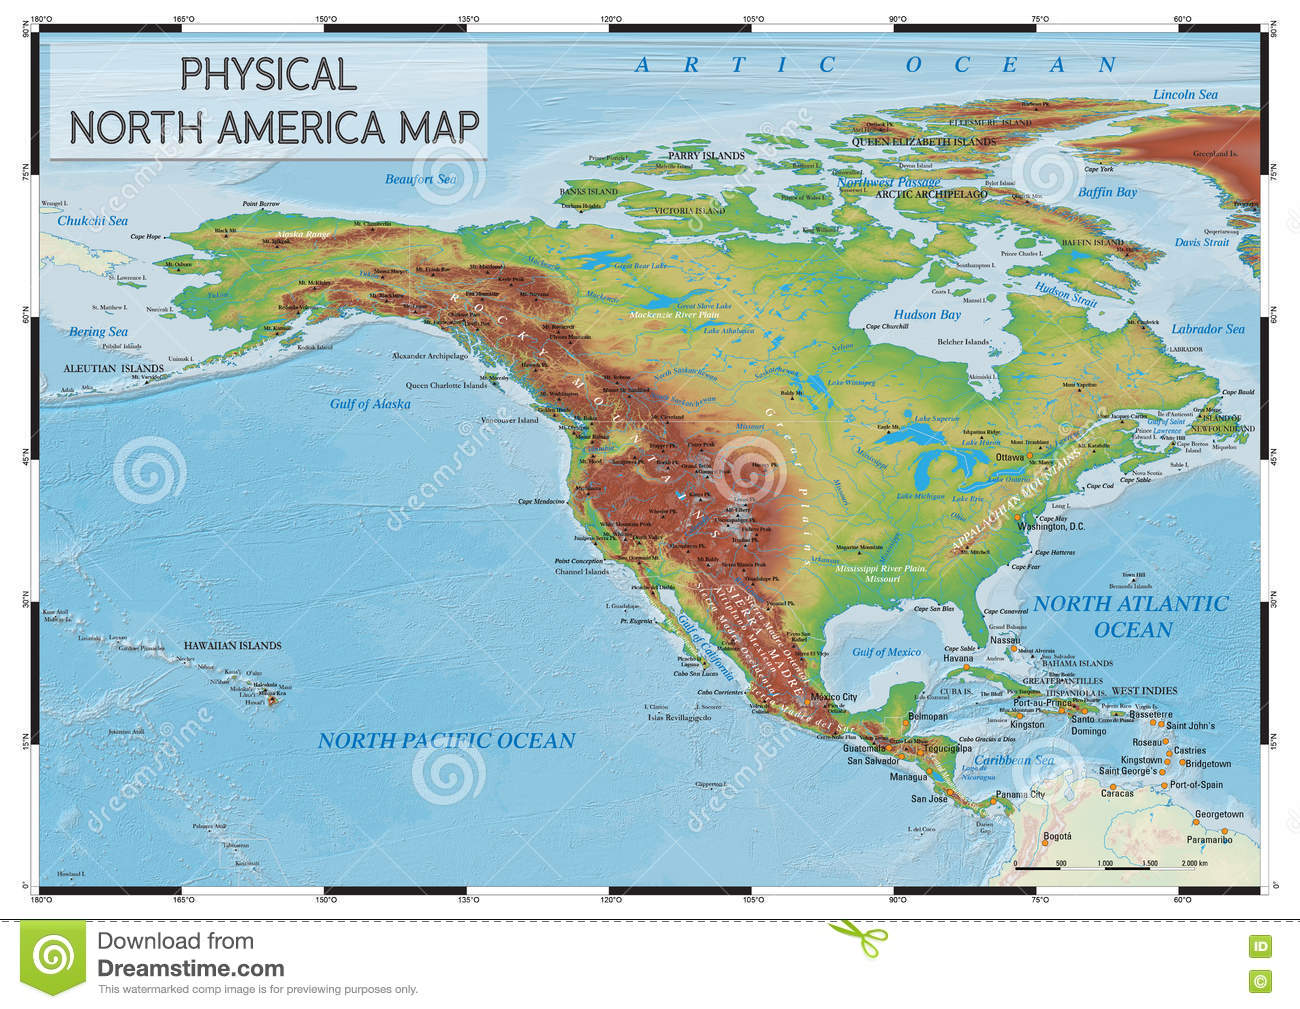 Kinds Of The United States Physical Features Map on physical features of the west virginia, physical features of the south africa, average temperature of the united states map, physical features of the globe, latitude of the united states map, physical features of the new york, physical features of the earth map, names of the united states map, physical features of the florida,